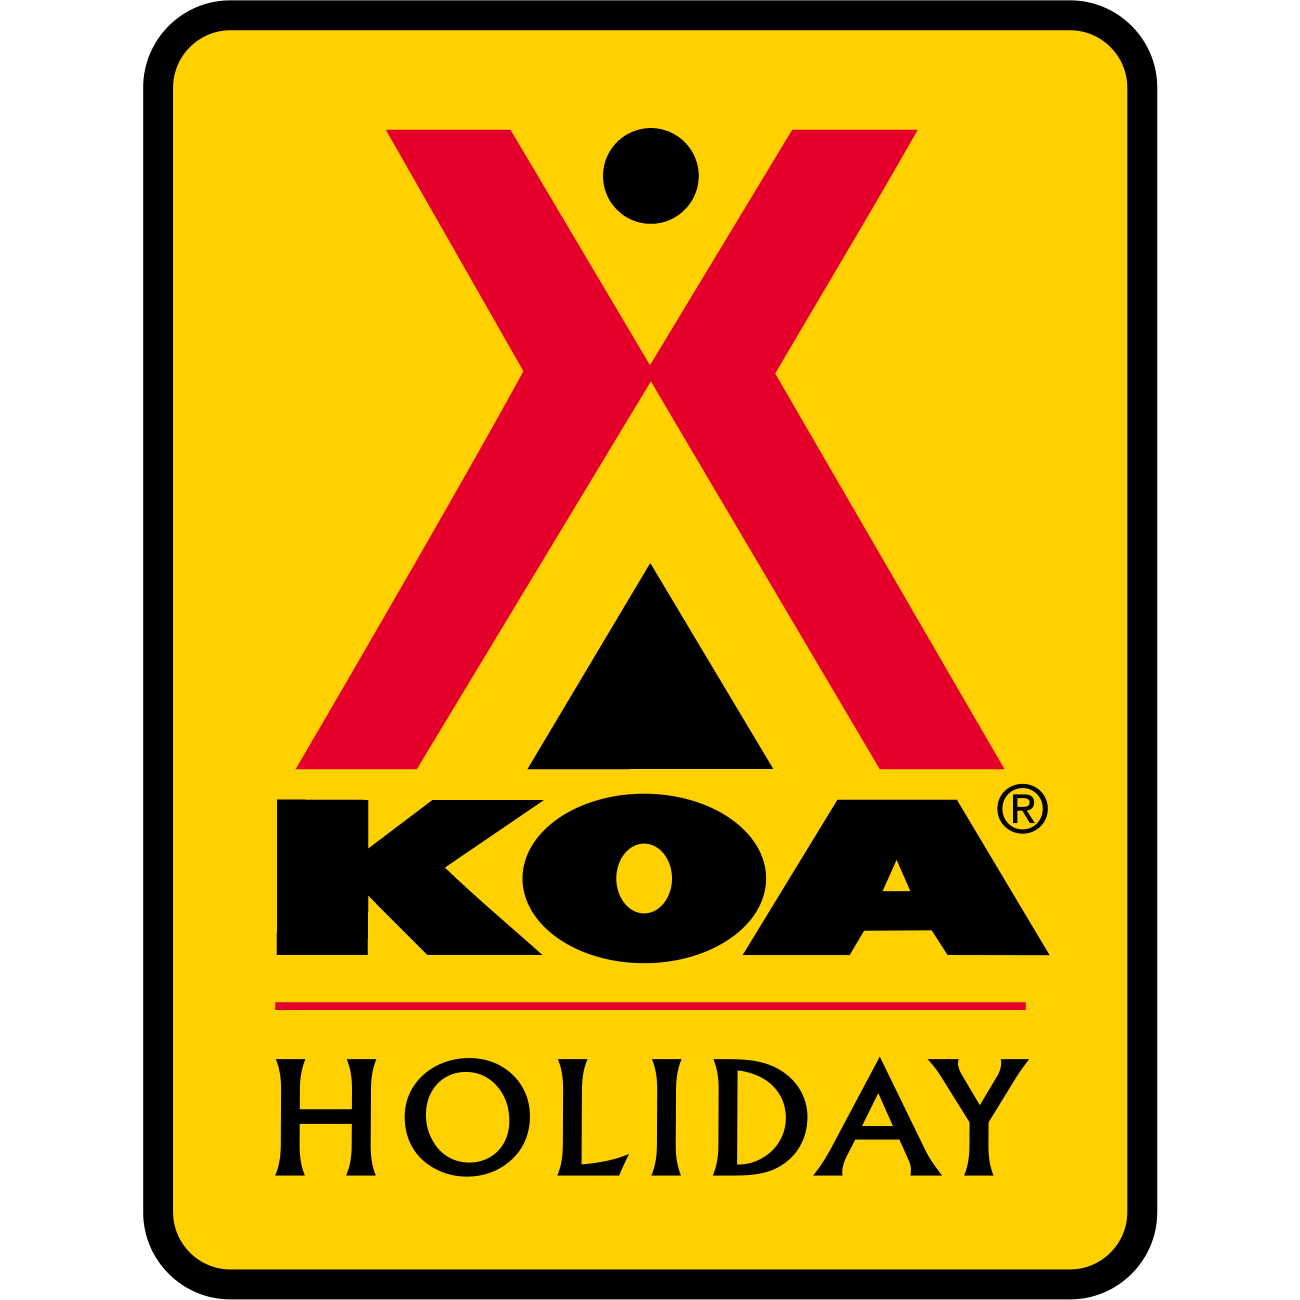 Petoskey KOA Holiday